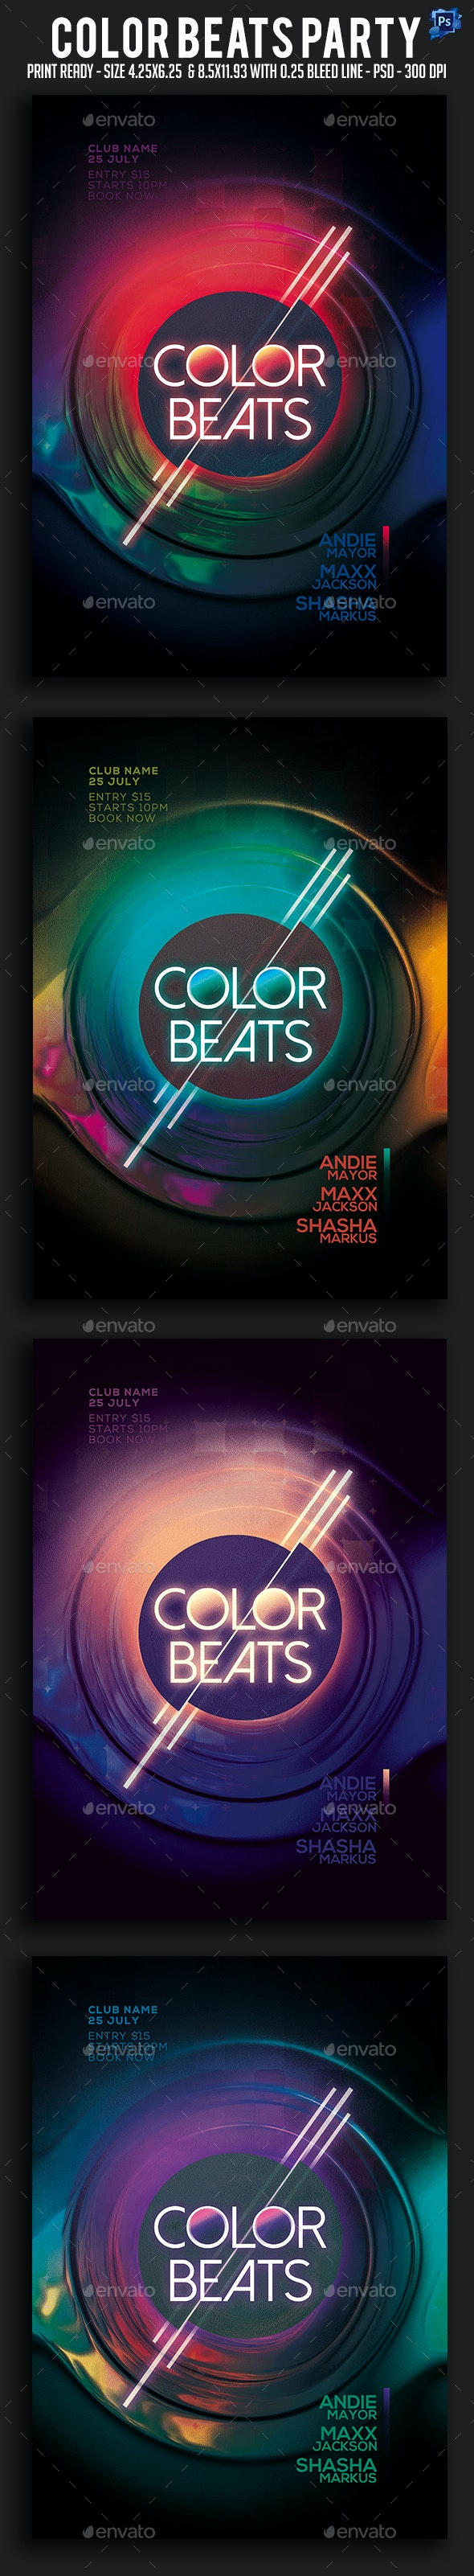 Color Beats Party Flyer - Clubs & Parties Events